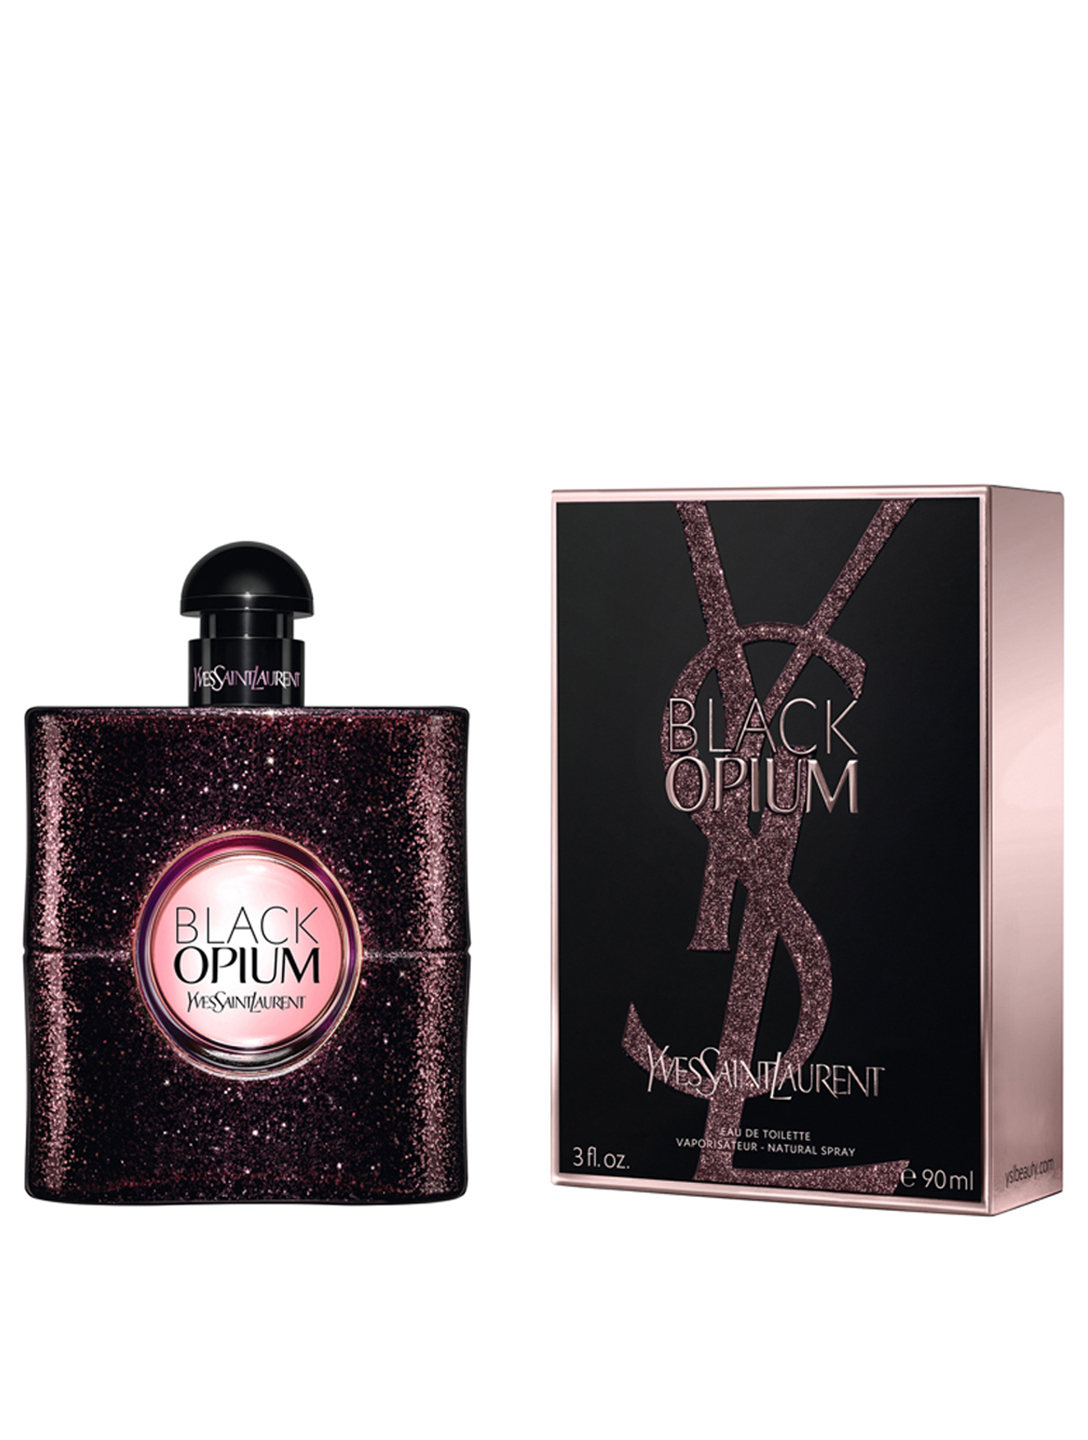 YVES SAINT LAURENT Black Opium Eau de Toilette Beauty